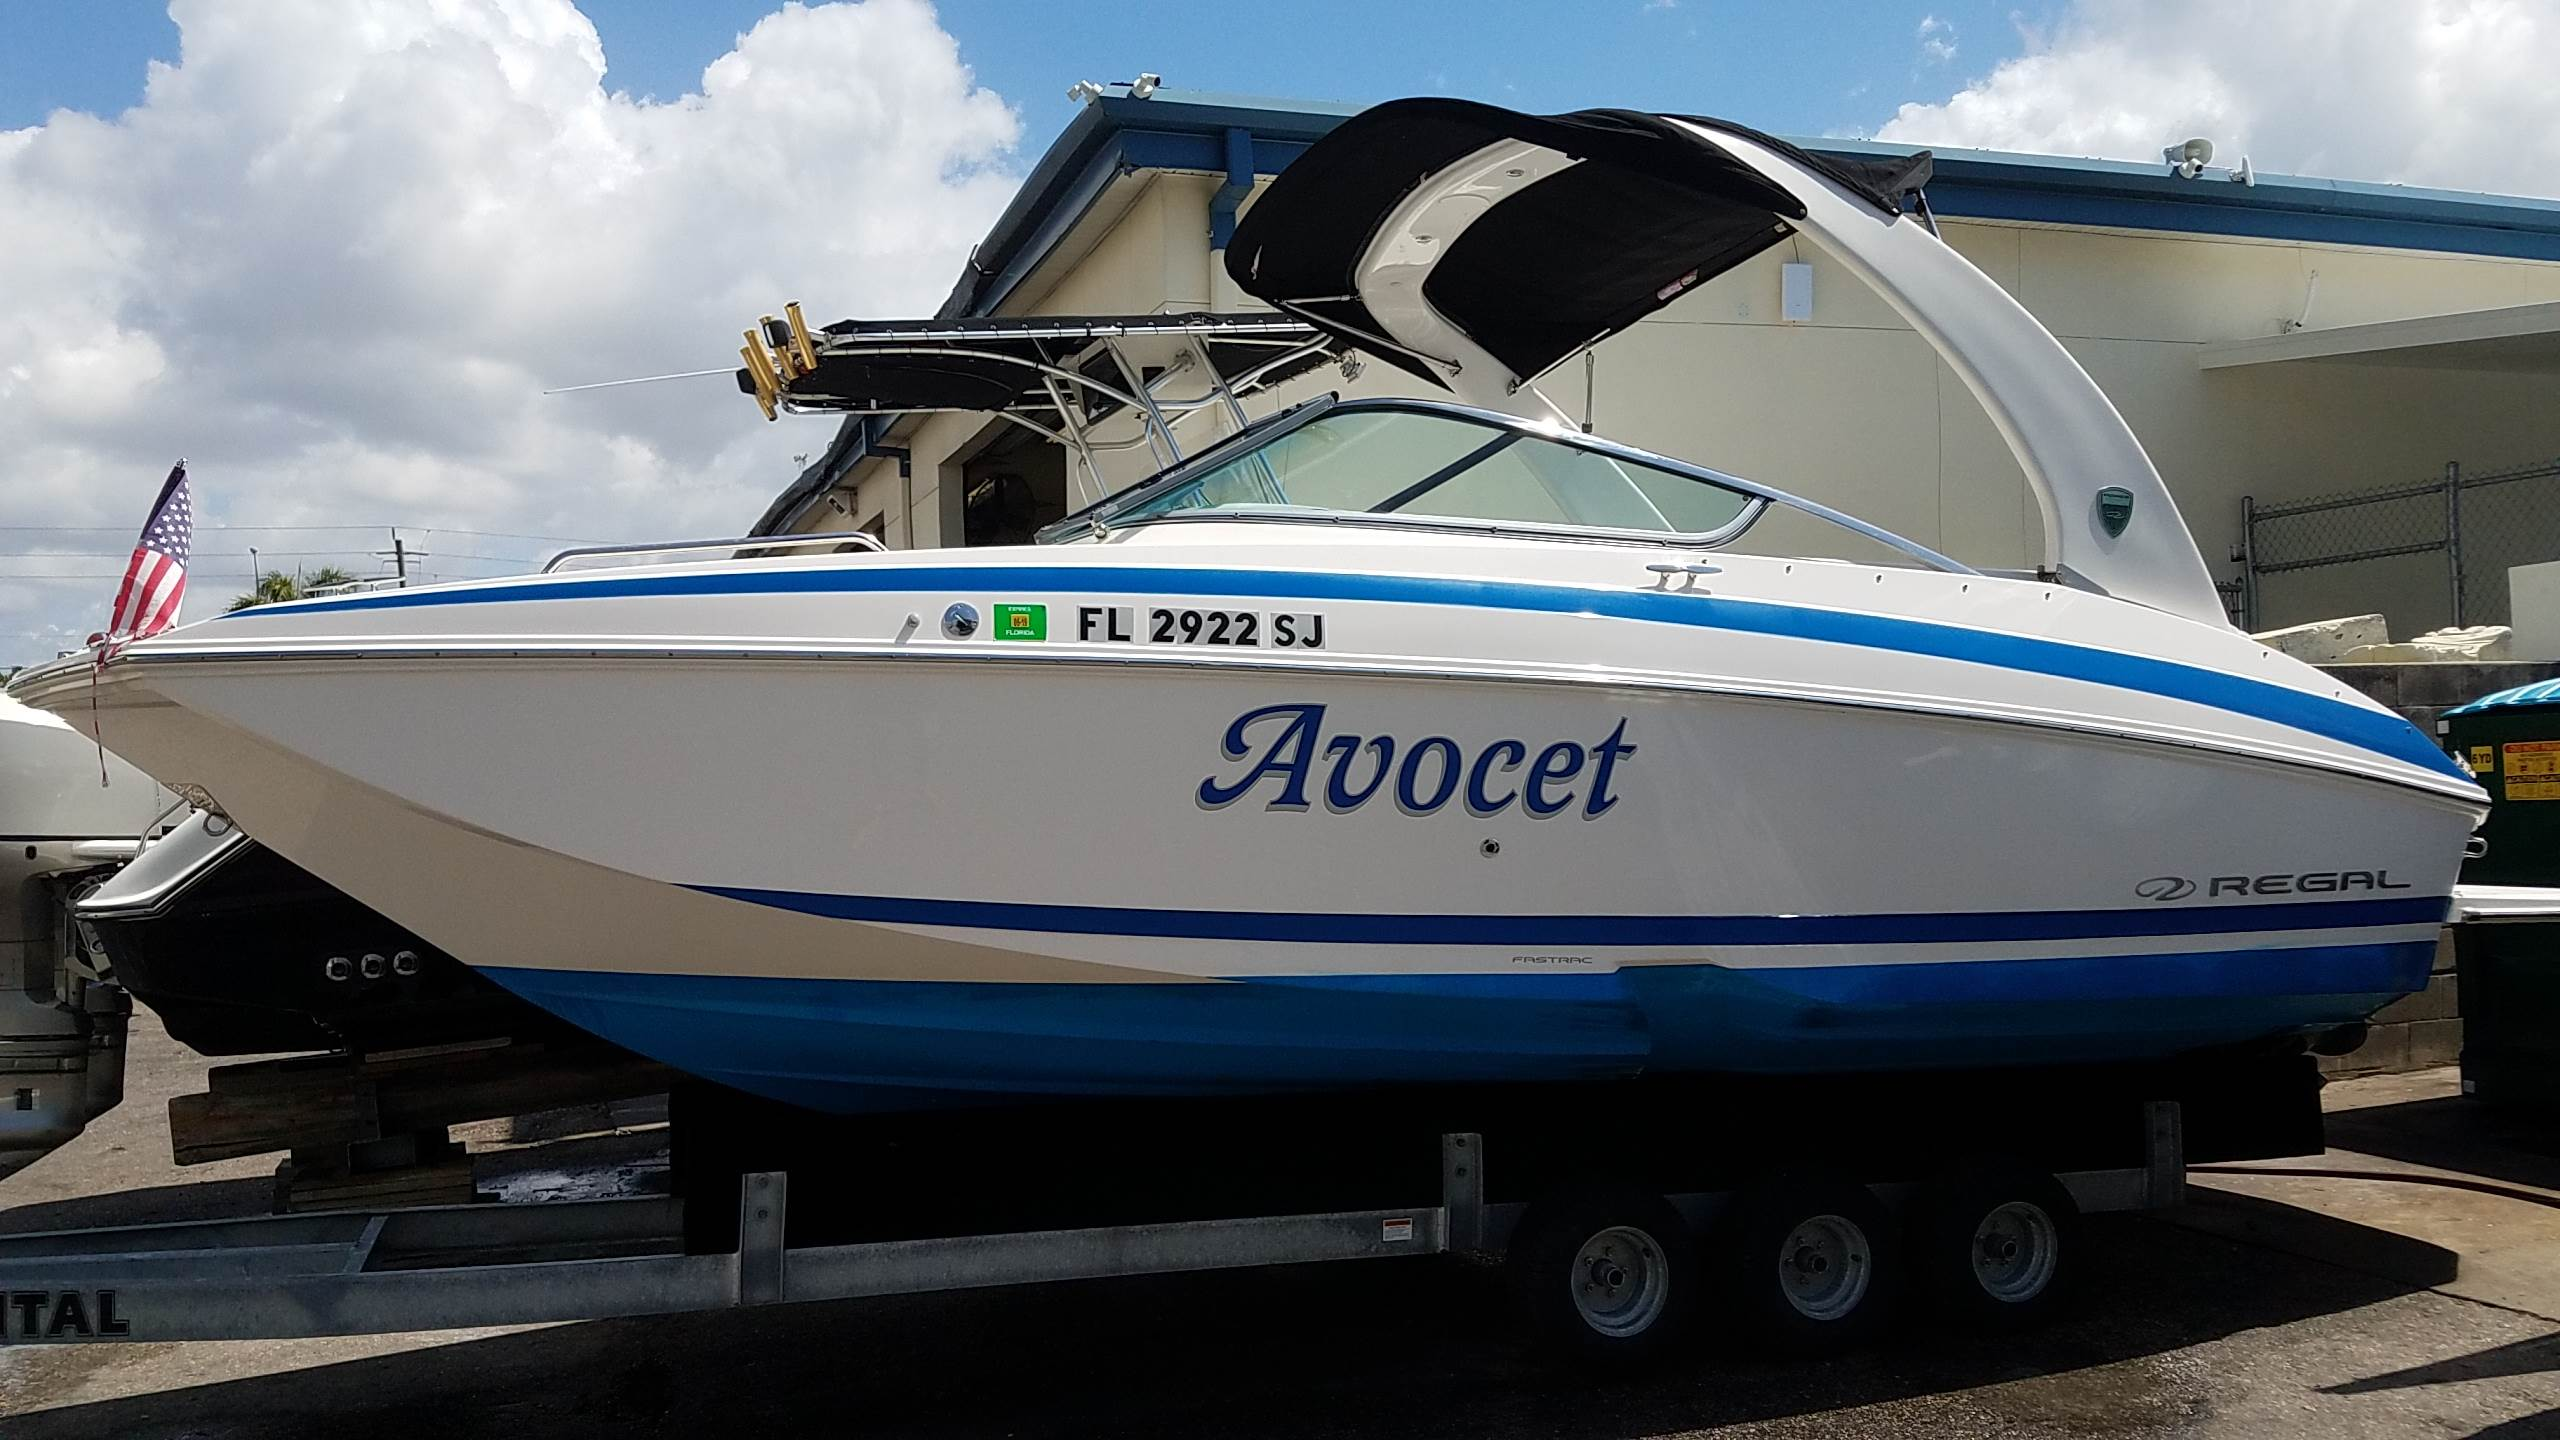 USED 2013 Regal Deck Boat 24 FasDeck | Sarasota, FL